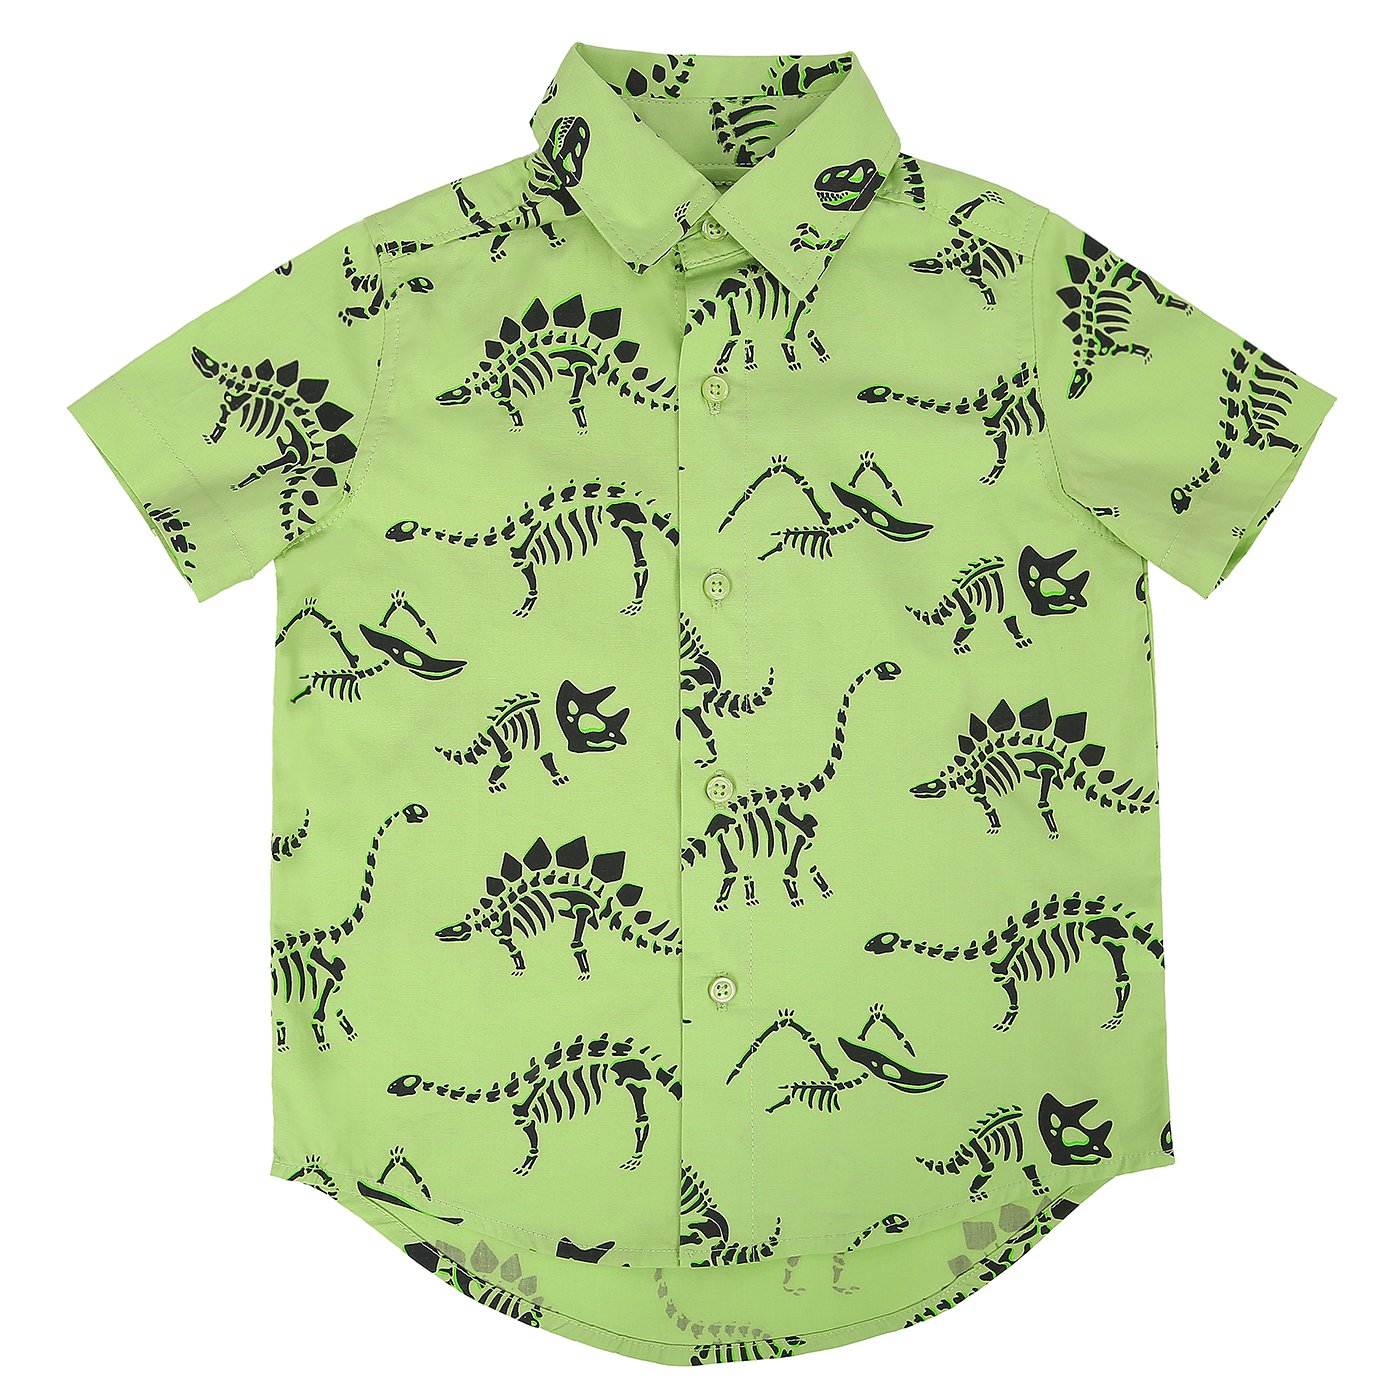 HDE Boys Short Sleeve Button Down Cotton Shirt Cute Pattern Prints - Size 2T-7/8 (Dinosaur, 7/8)